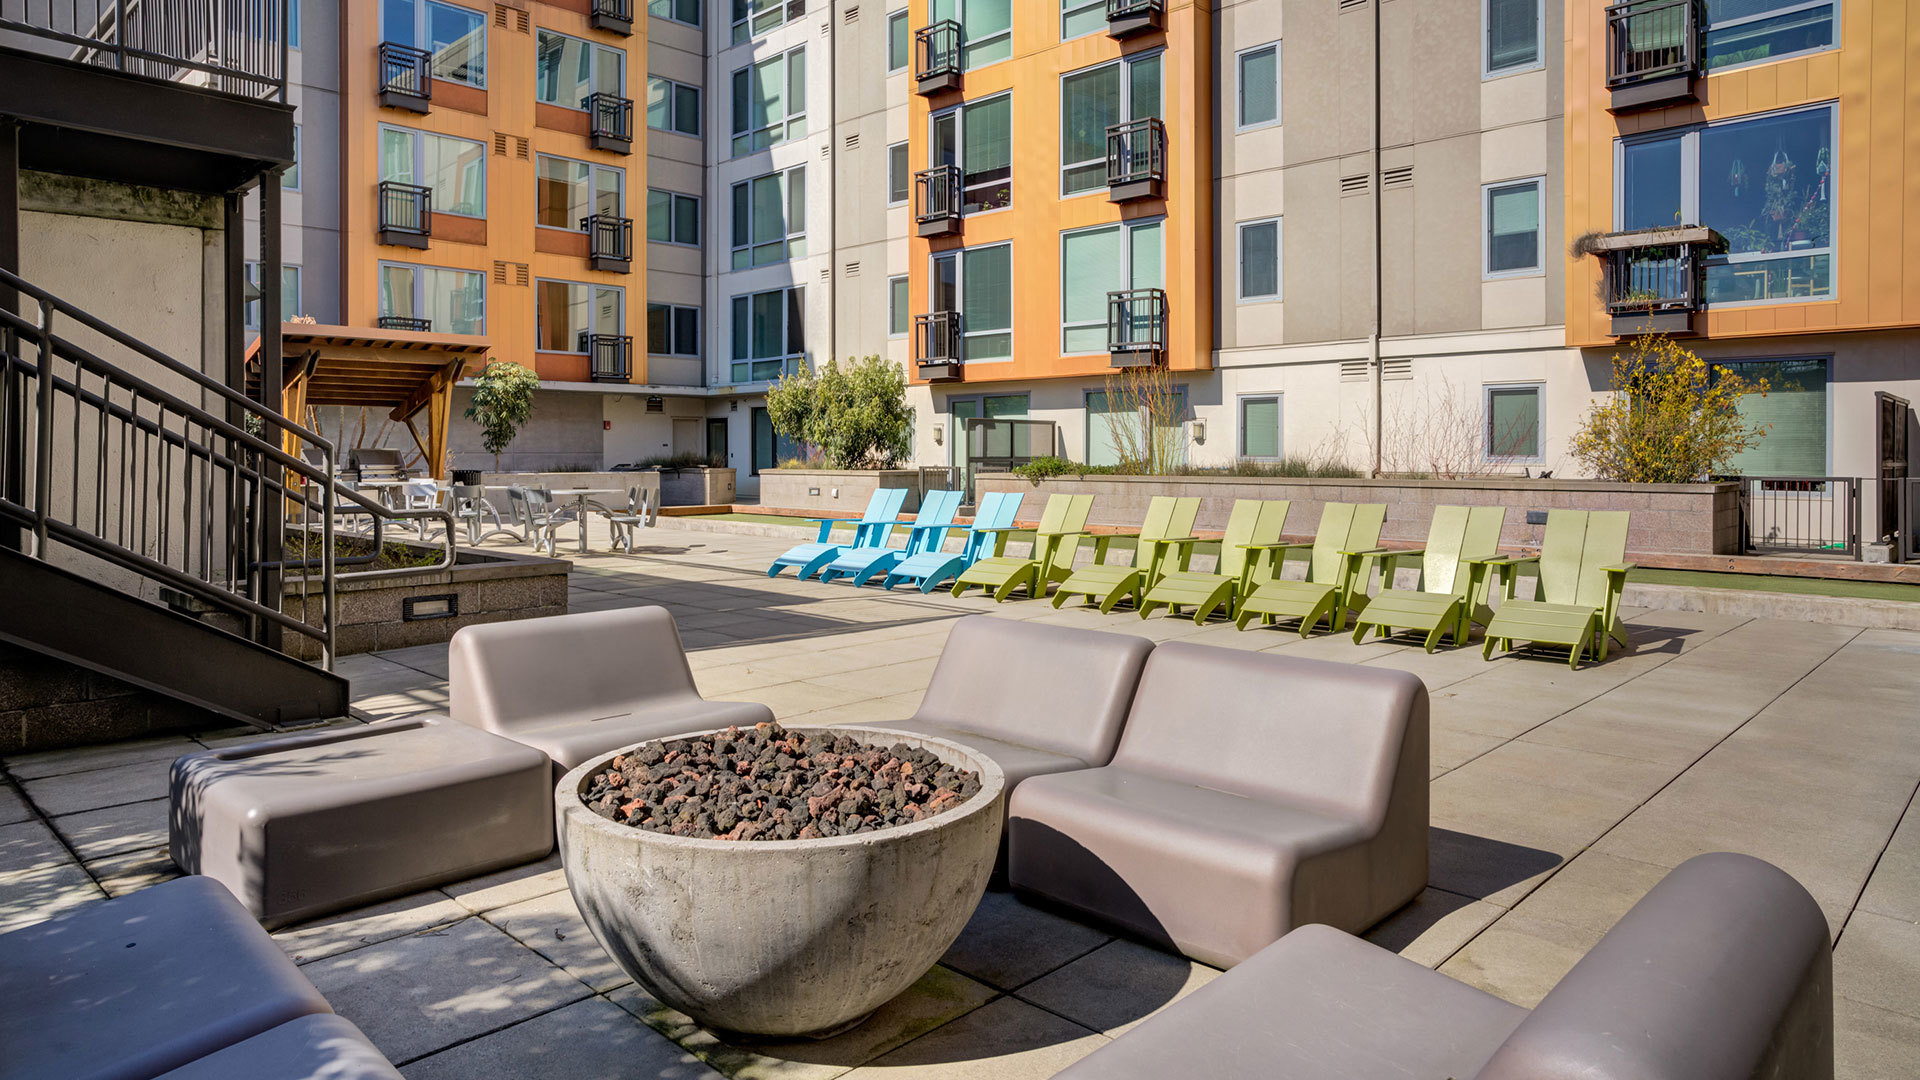 Outdoor fire pit surrounded by benches in Prescott apartment courtyard